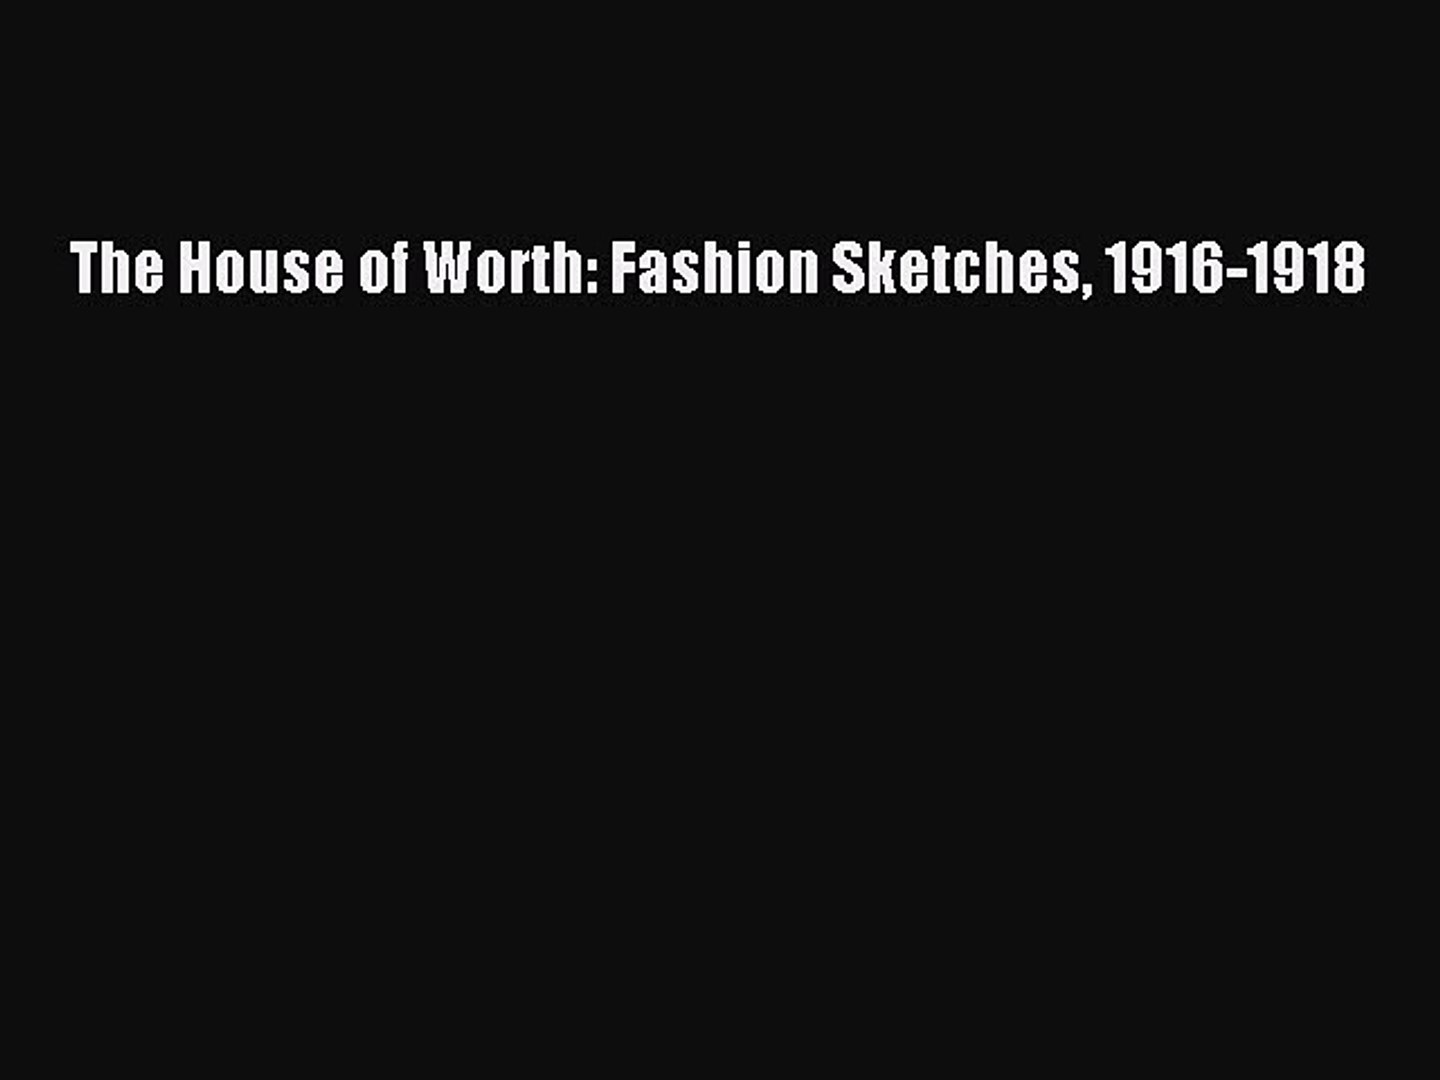 [Read Book] The House of Worth: Fashion Sketches 1916-1918  EBook